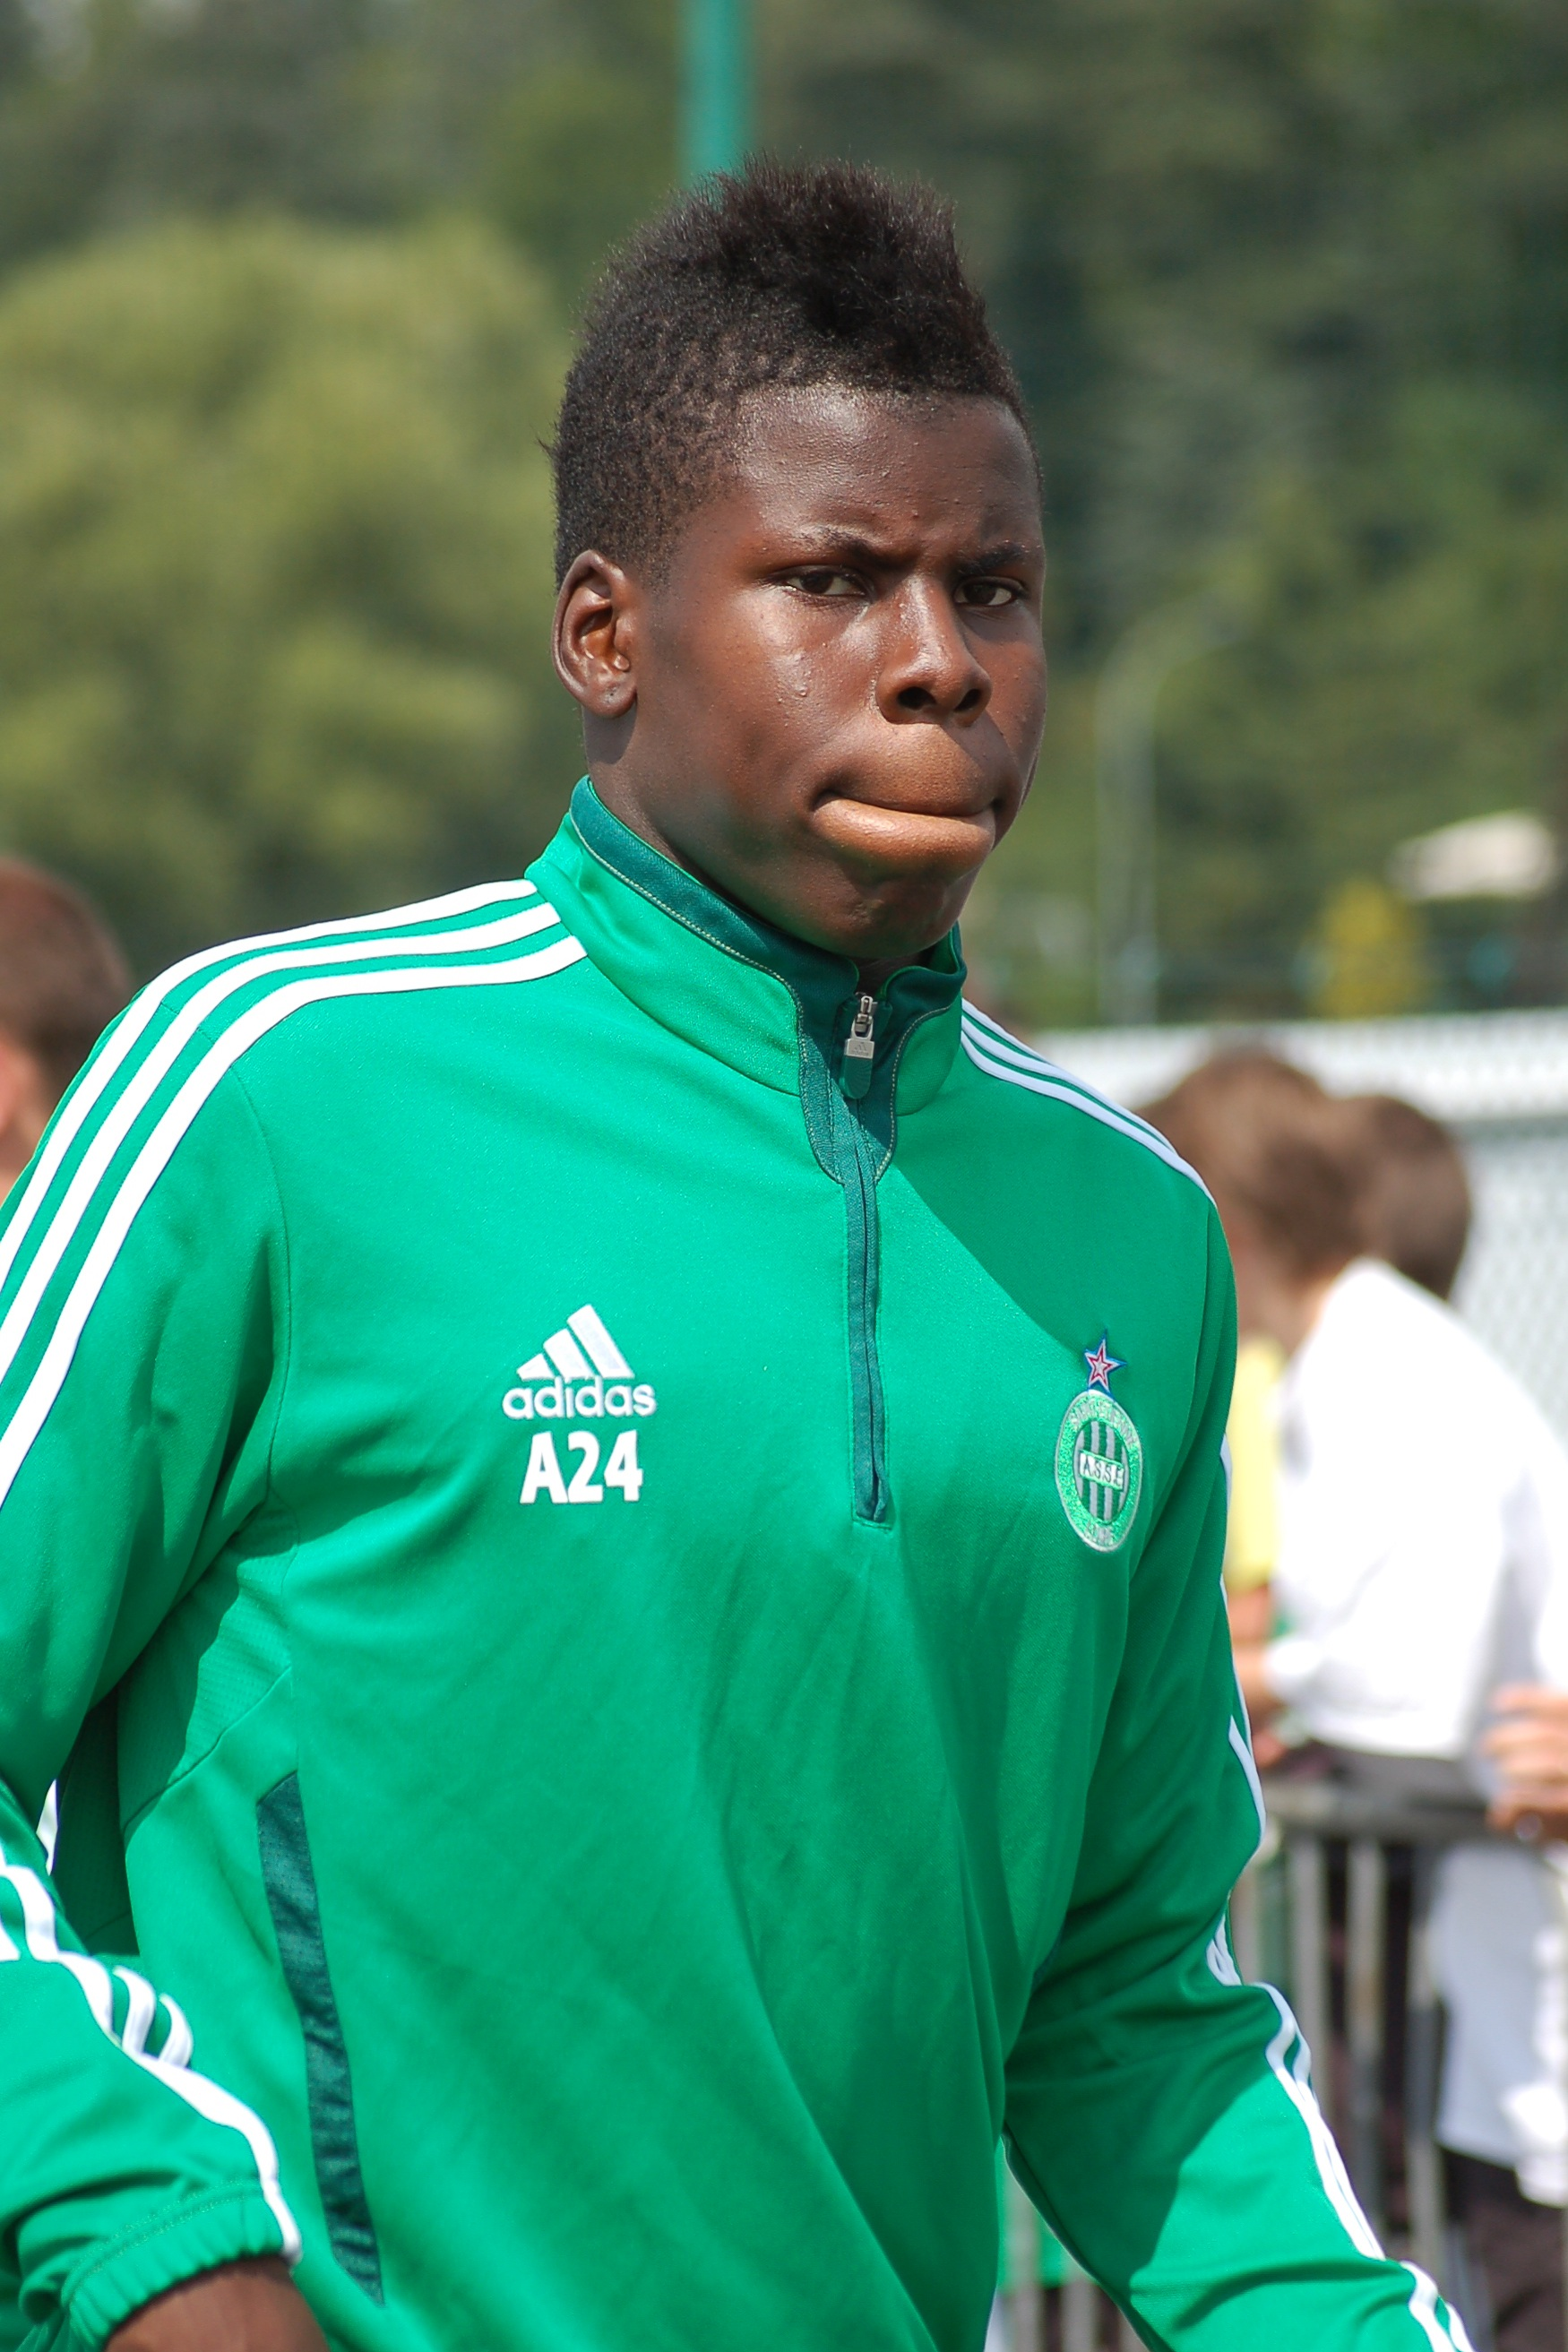 Football wonderkid Kurt Zouma